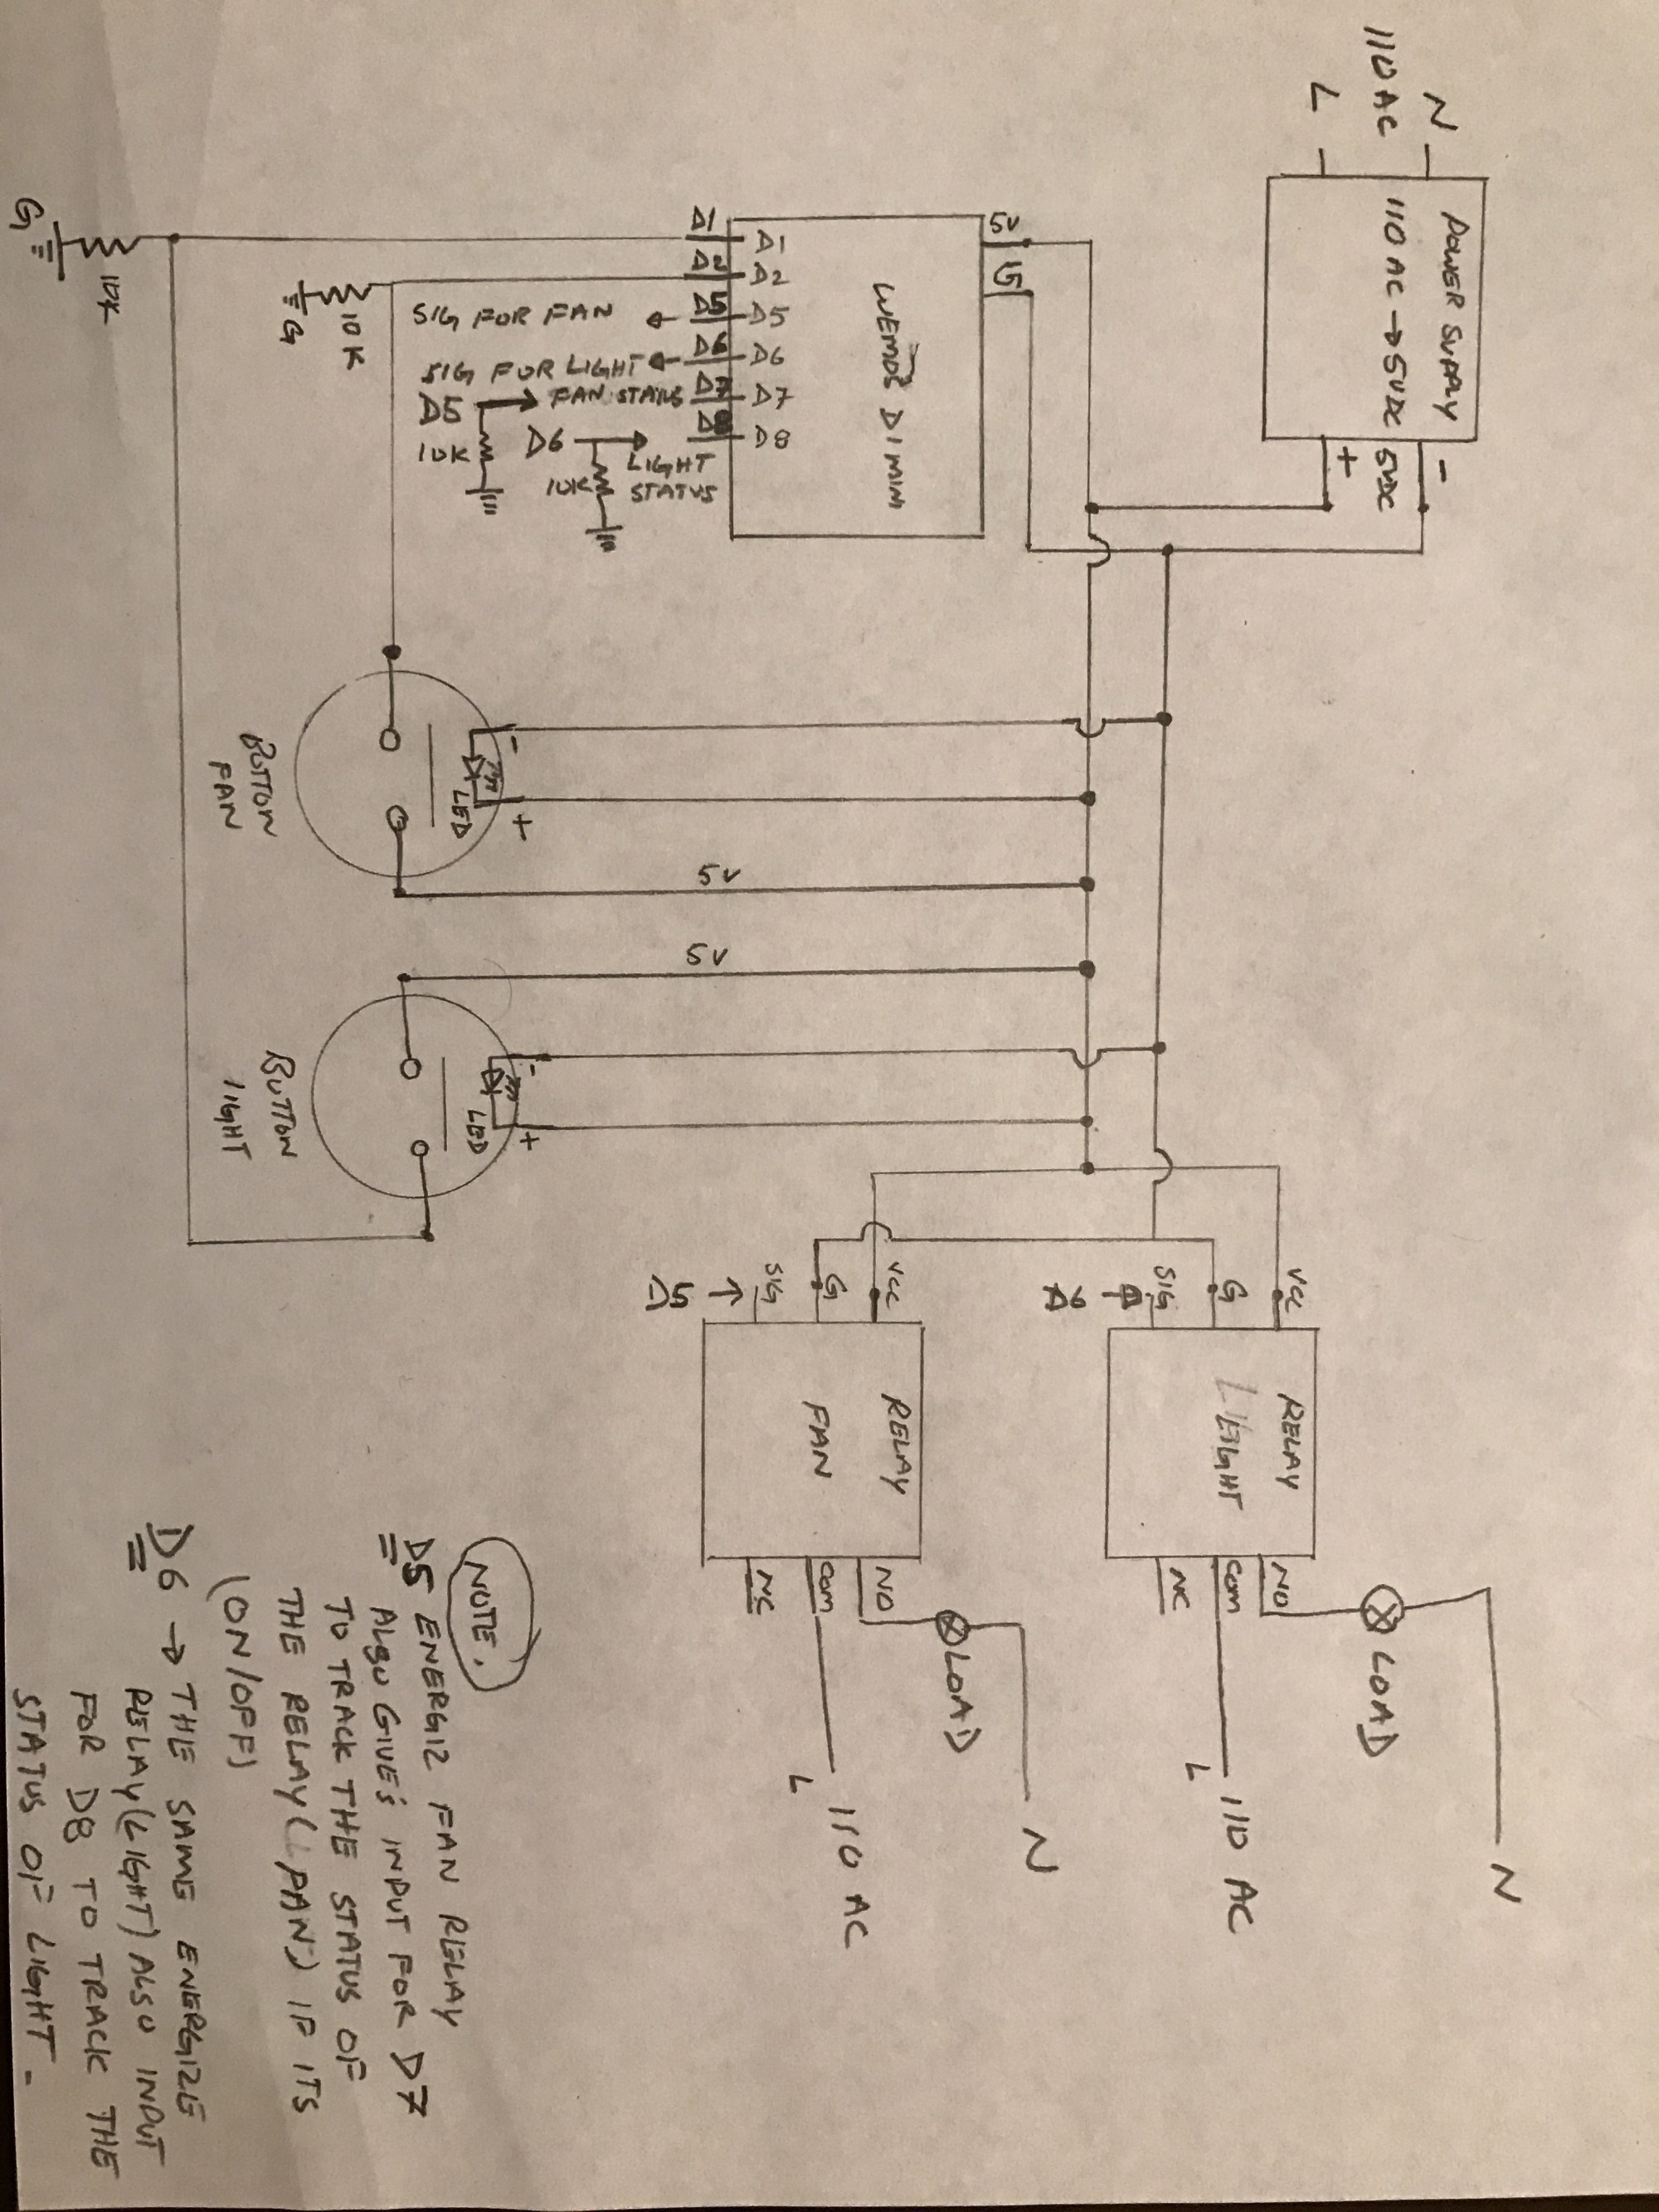 hight resolution of hello brother this is the circuit diagram sorry i did it the old style draw it with my hand i don t have the app for the circuit designer if u have